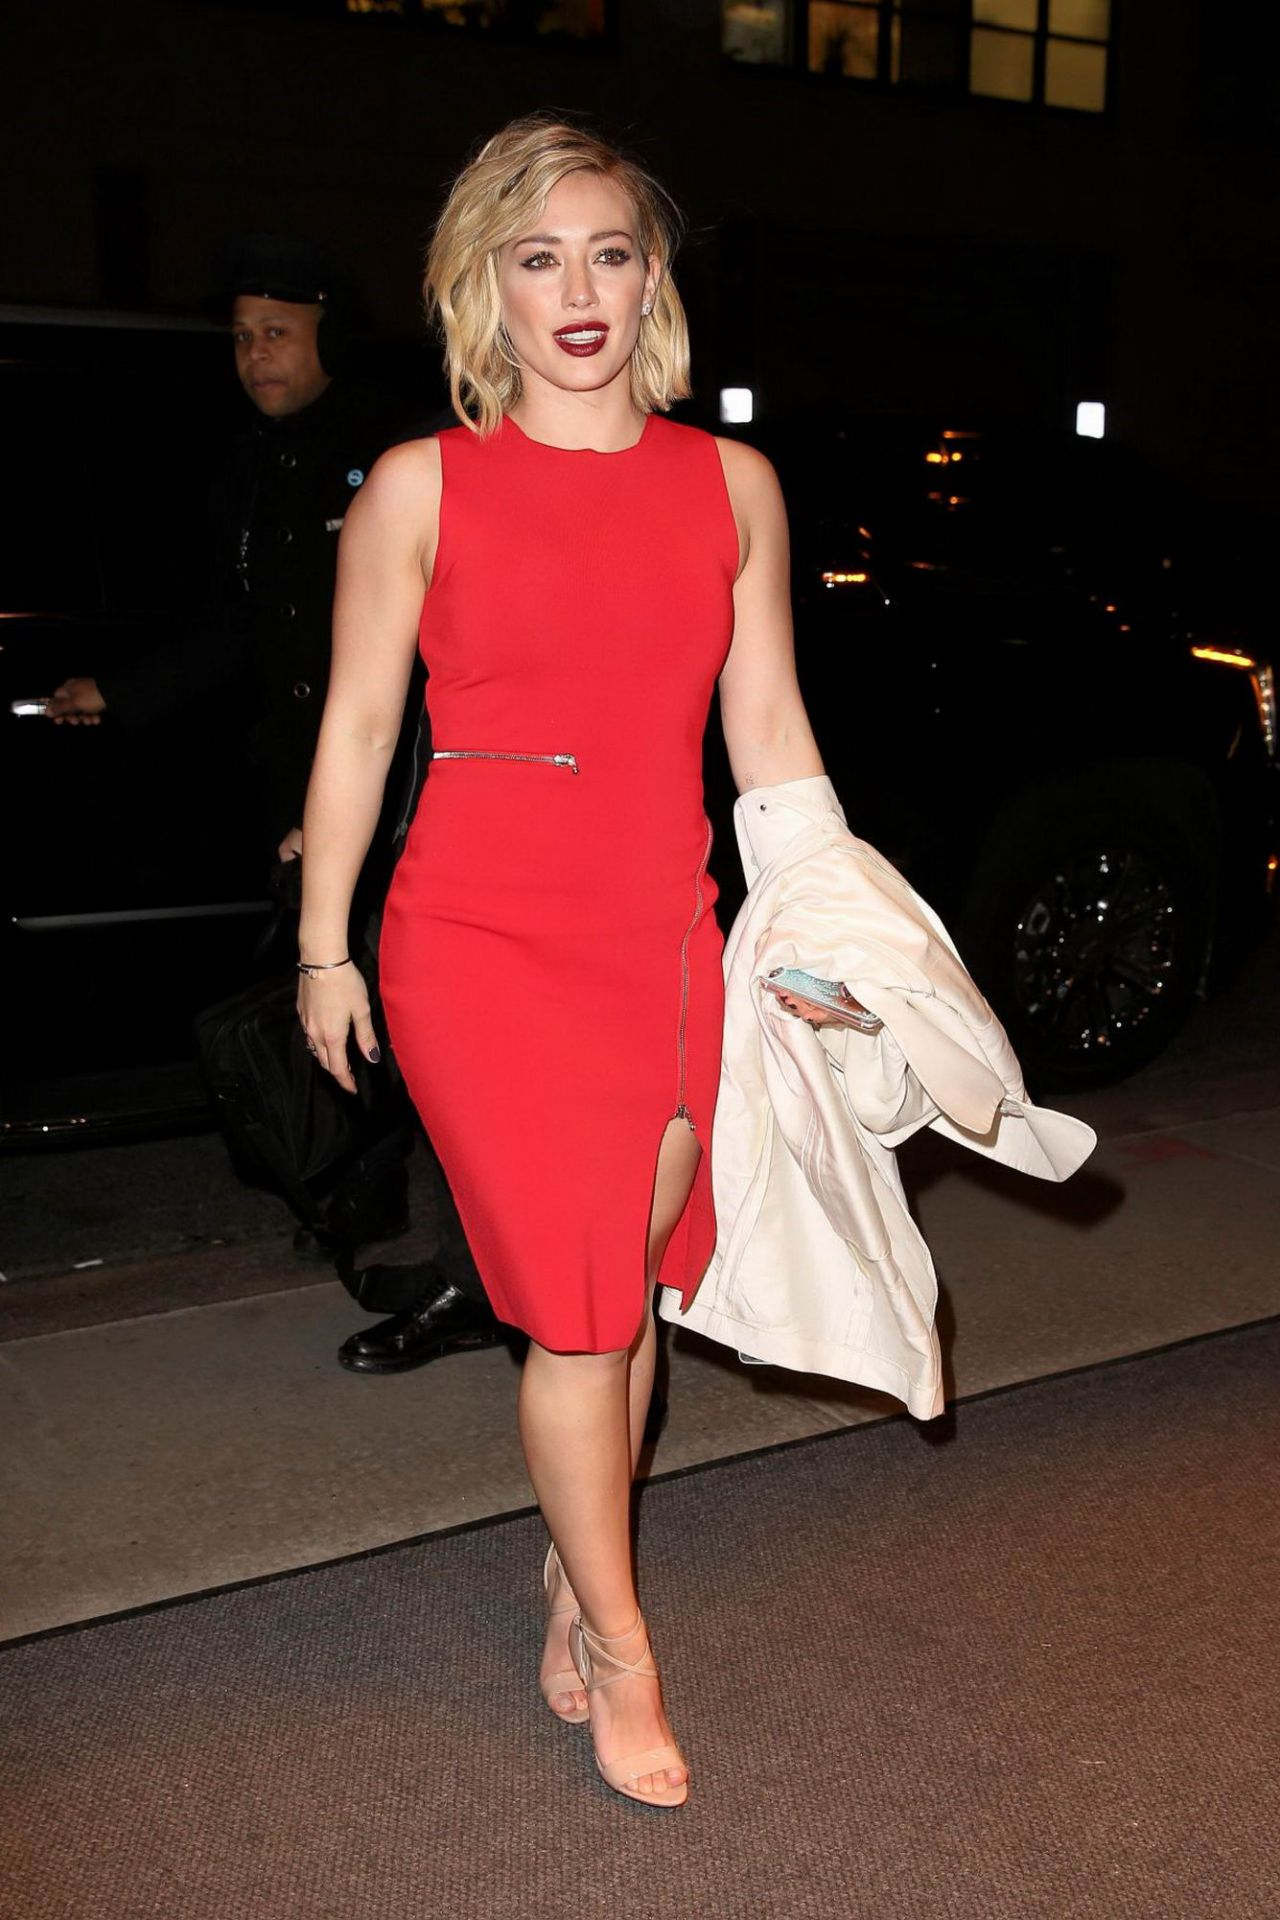 Hilary Duff Night Out Style - Out in Soho, January 2016 Hilary Duff